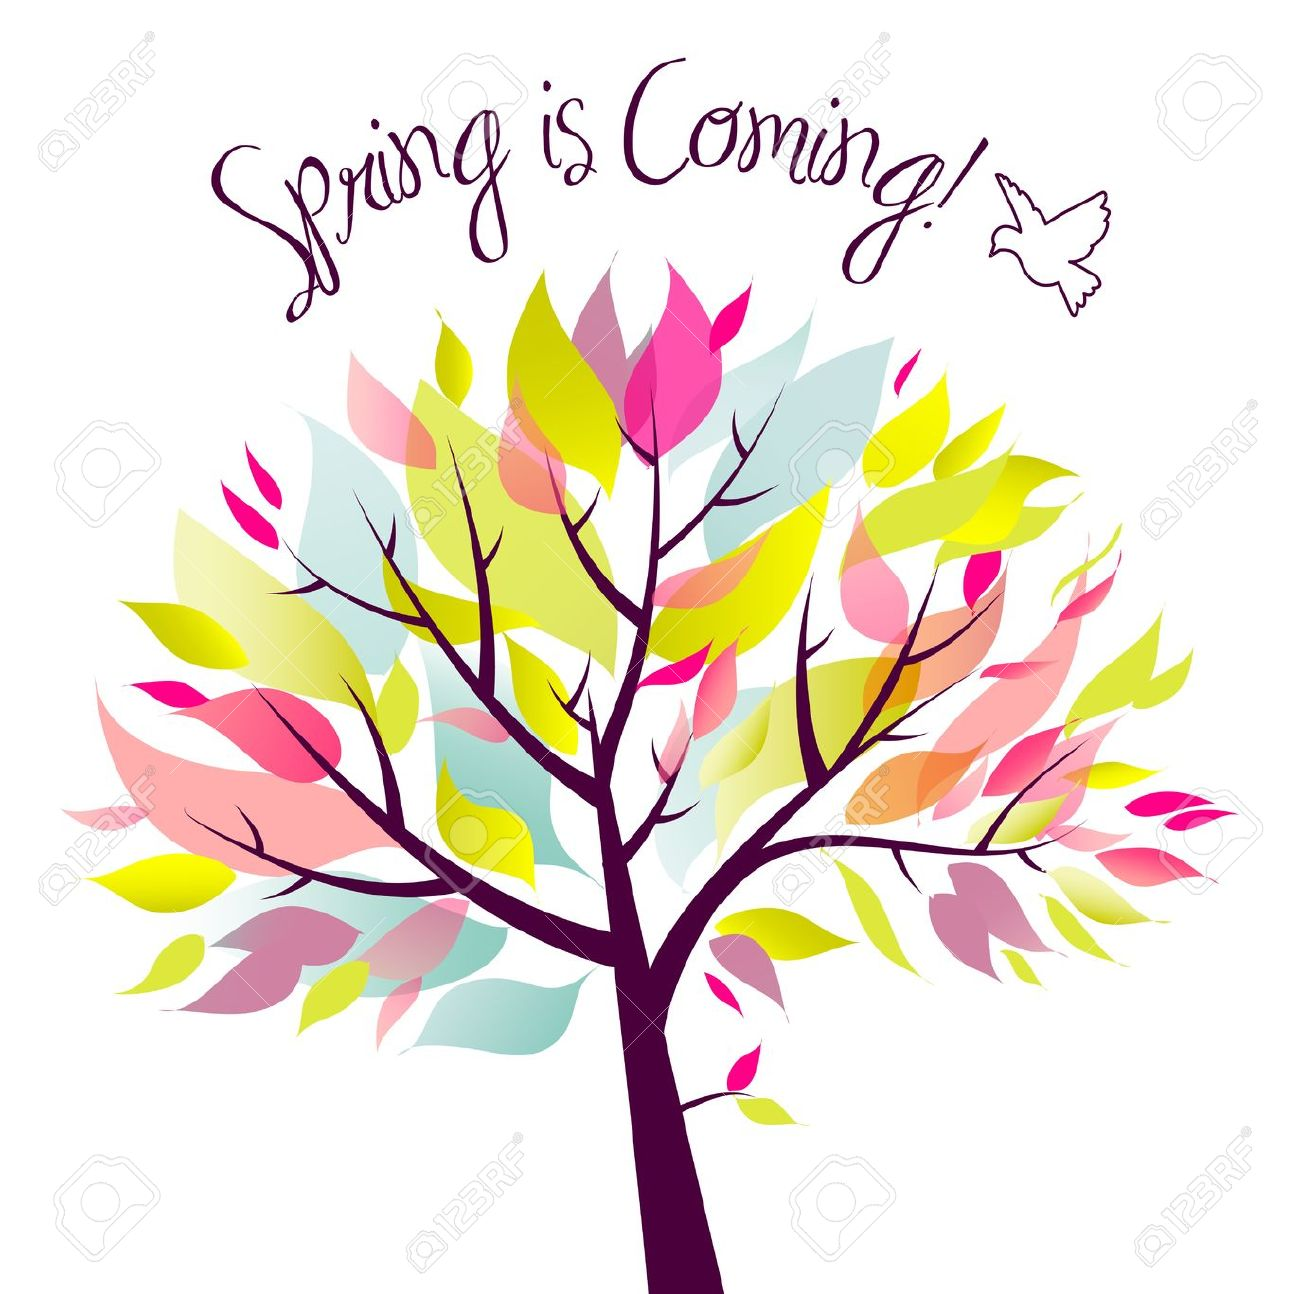 art-spring-is-coming-clipart-9.jpg